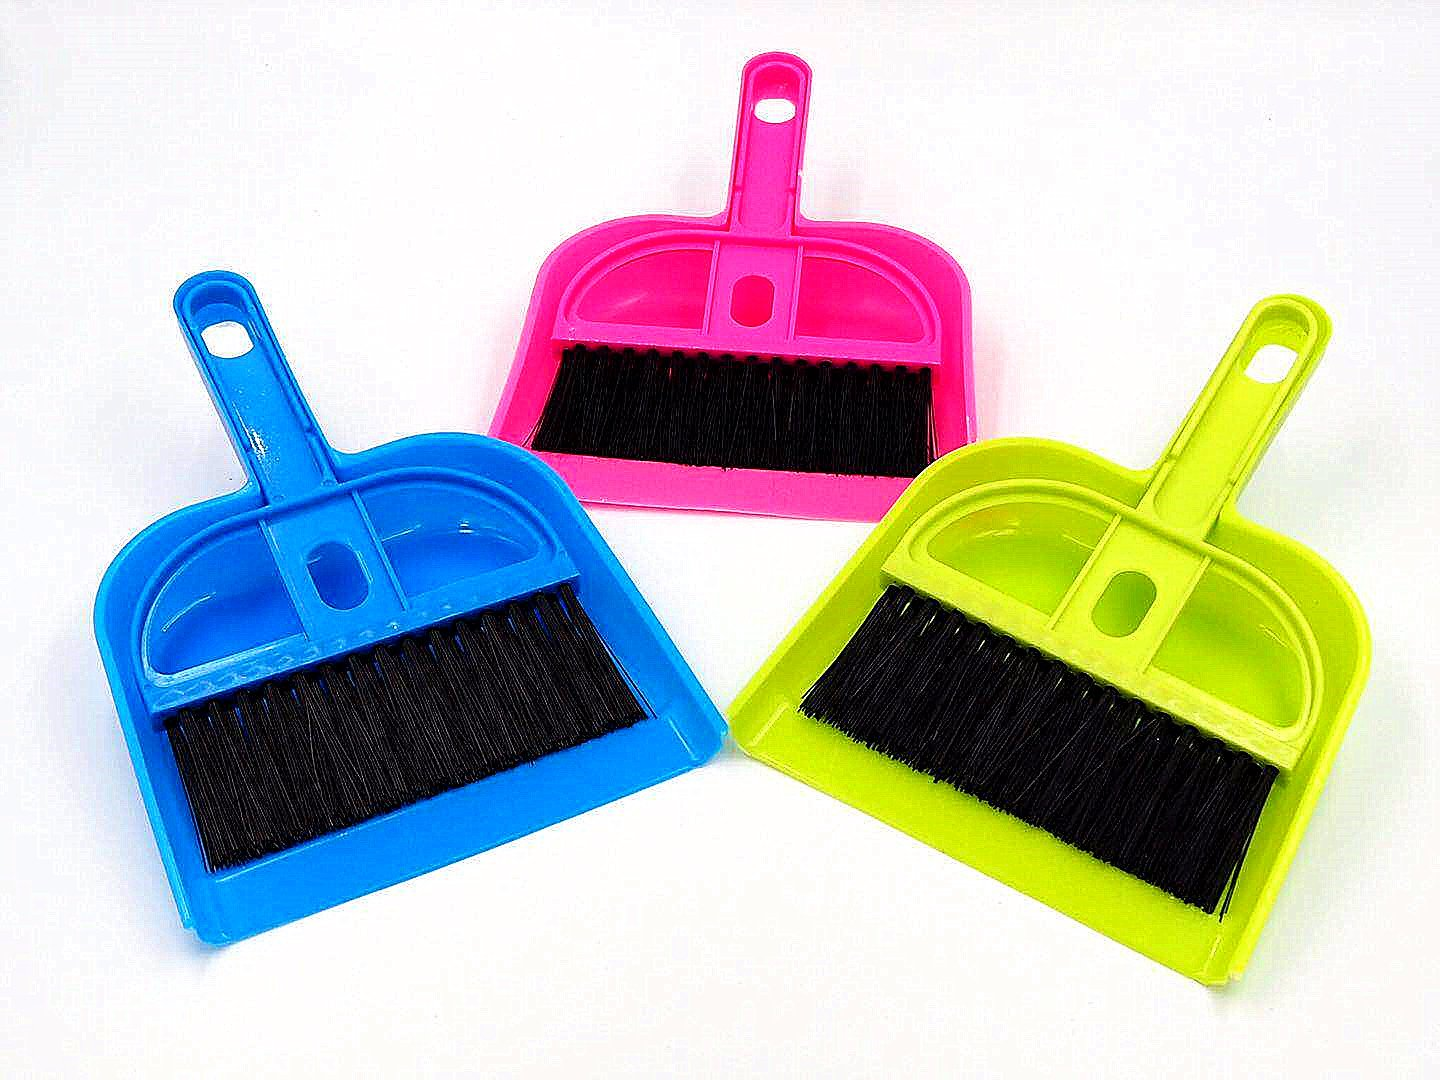 Pet Cage Broom Brush Dustpan - Animal Waste Mini Dustpan and Brush Set for Guinea Pigs, Cats, Hedgehogs, Hamsters, Chinchillas, Rabbits, Reptiles (3 Piece)